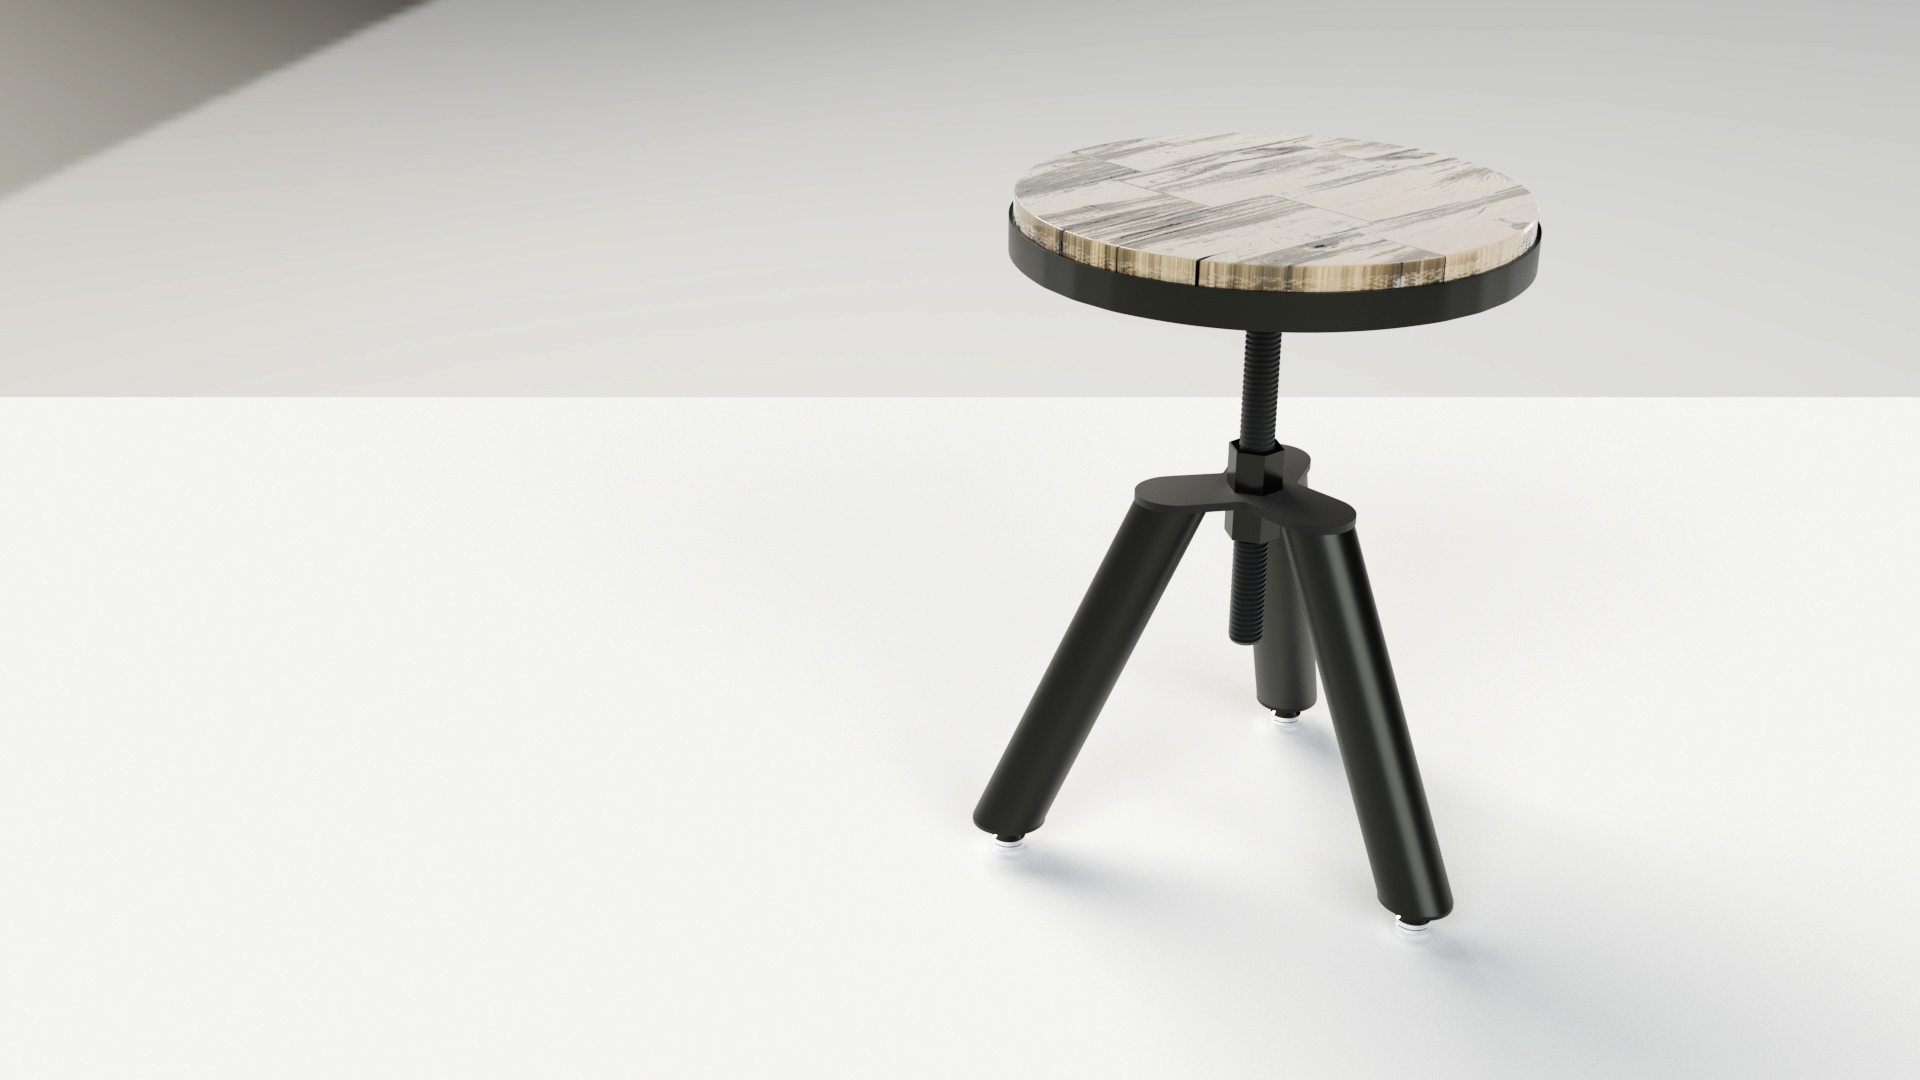 BFD_FurnitureSet_Grit_Stool_Concept1_View1_102217.jpg